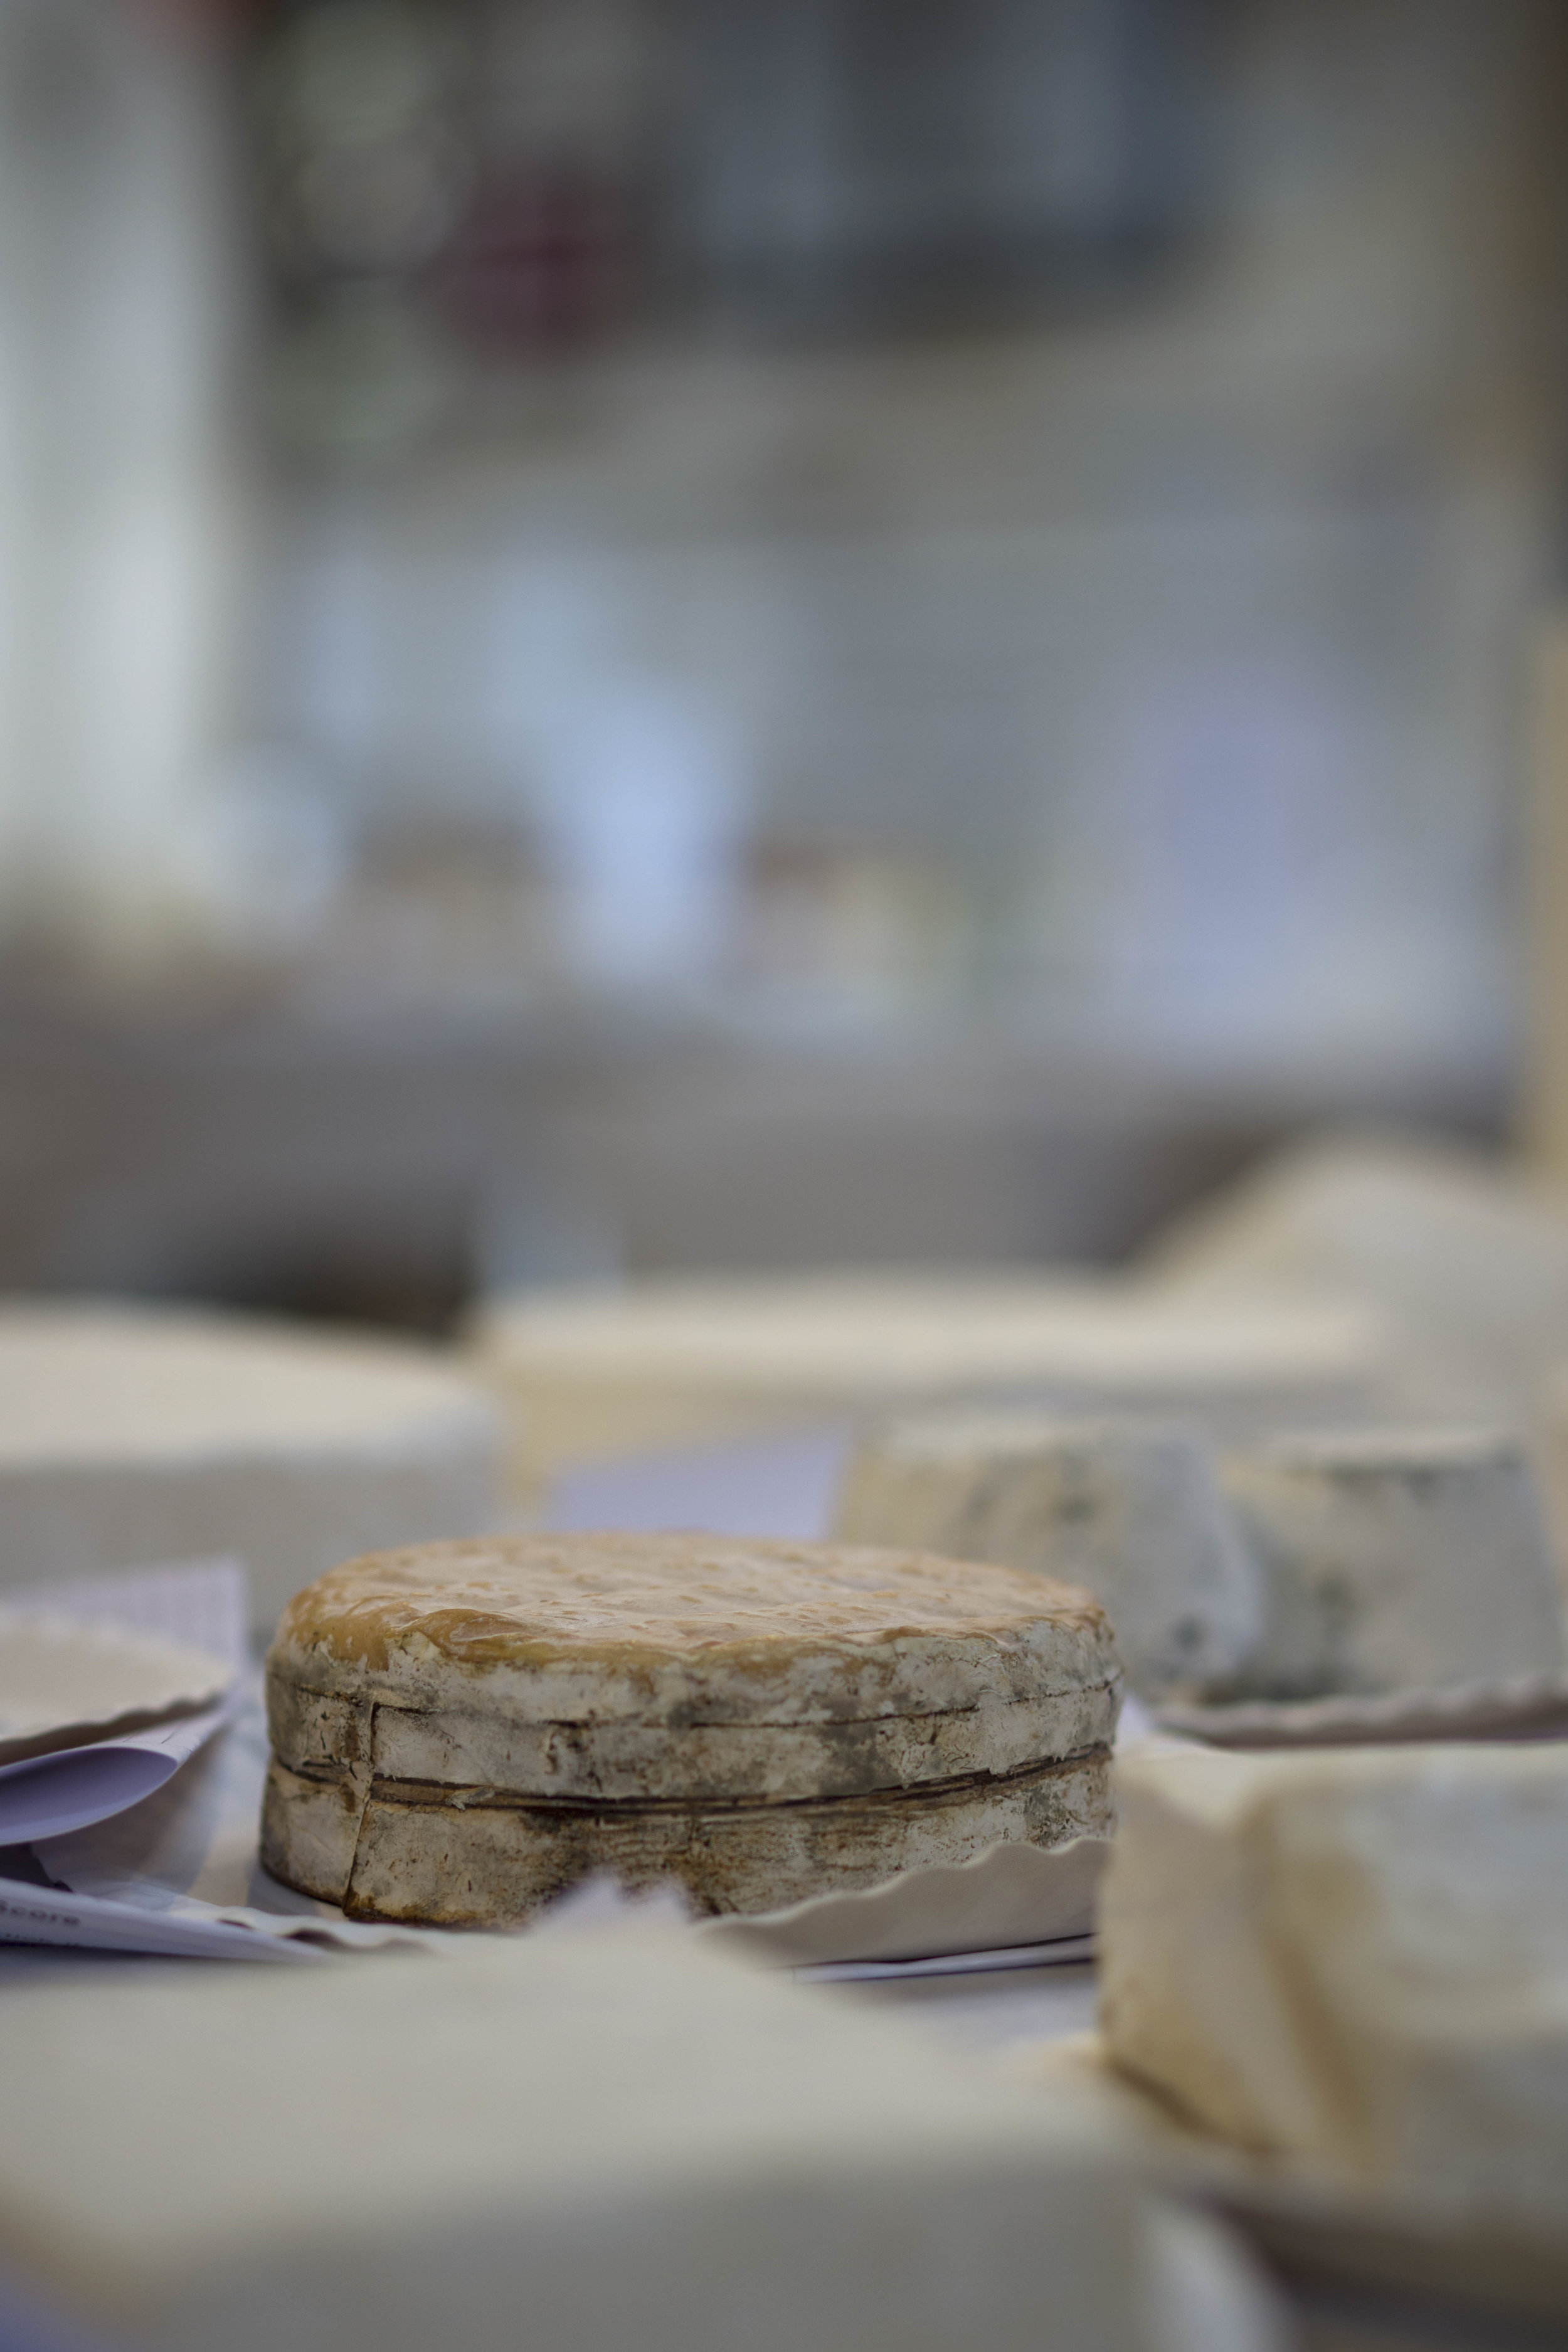 A selection of cheese awaiting the judging